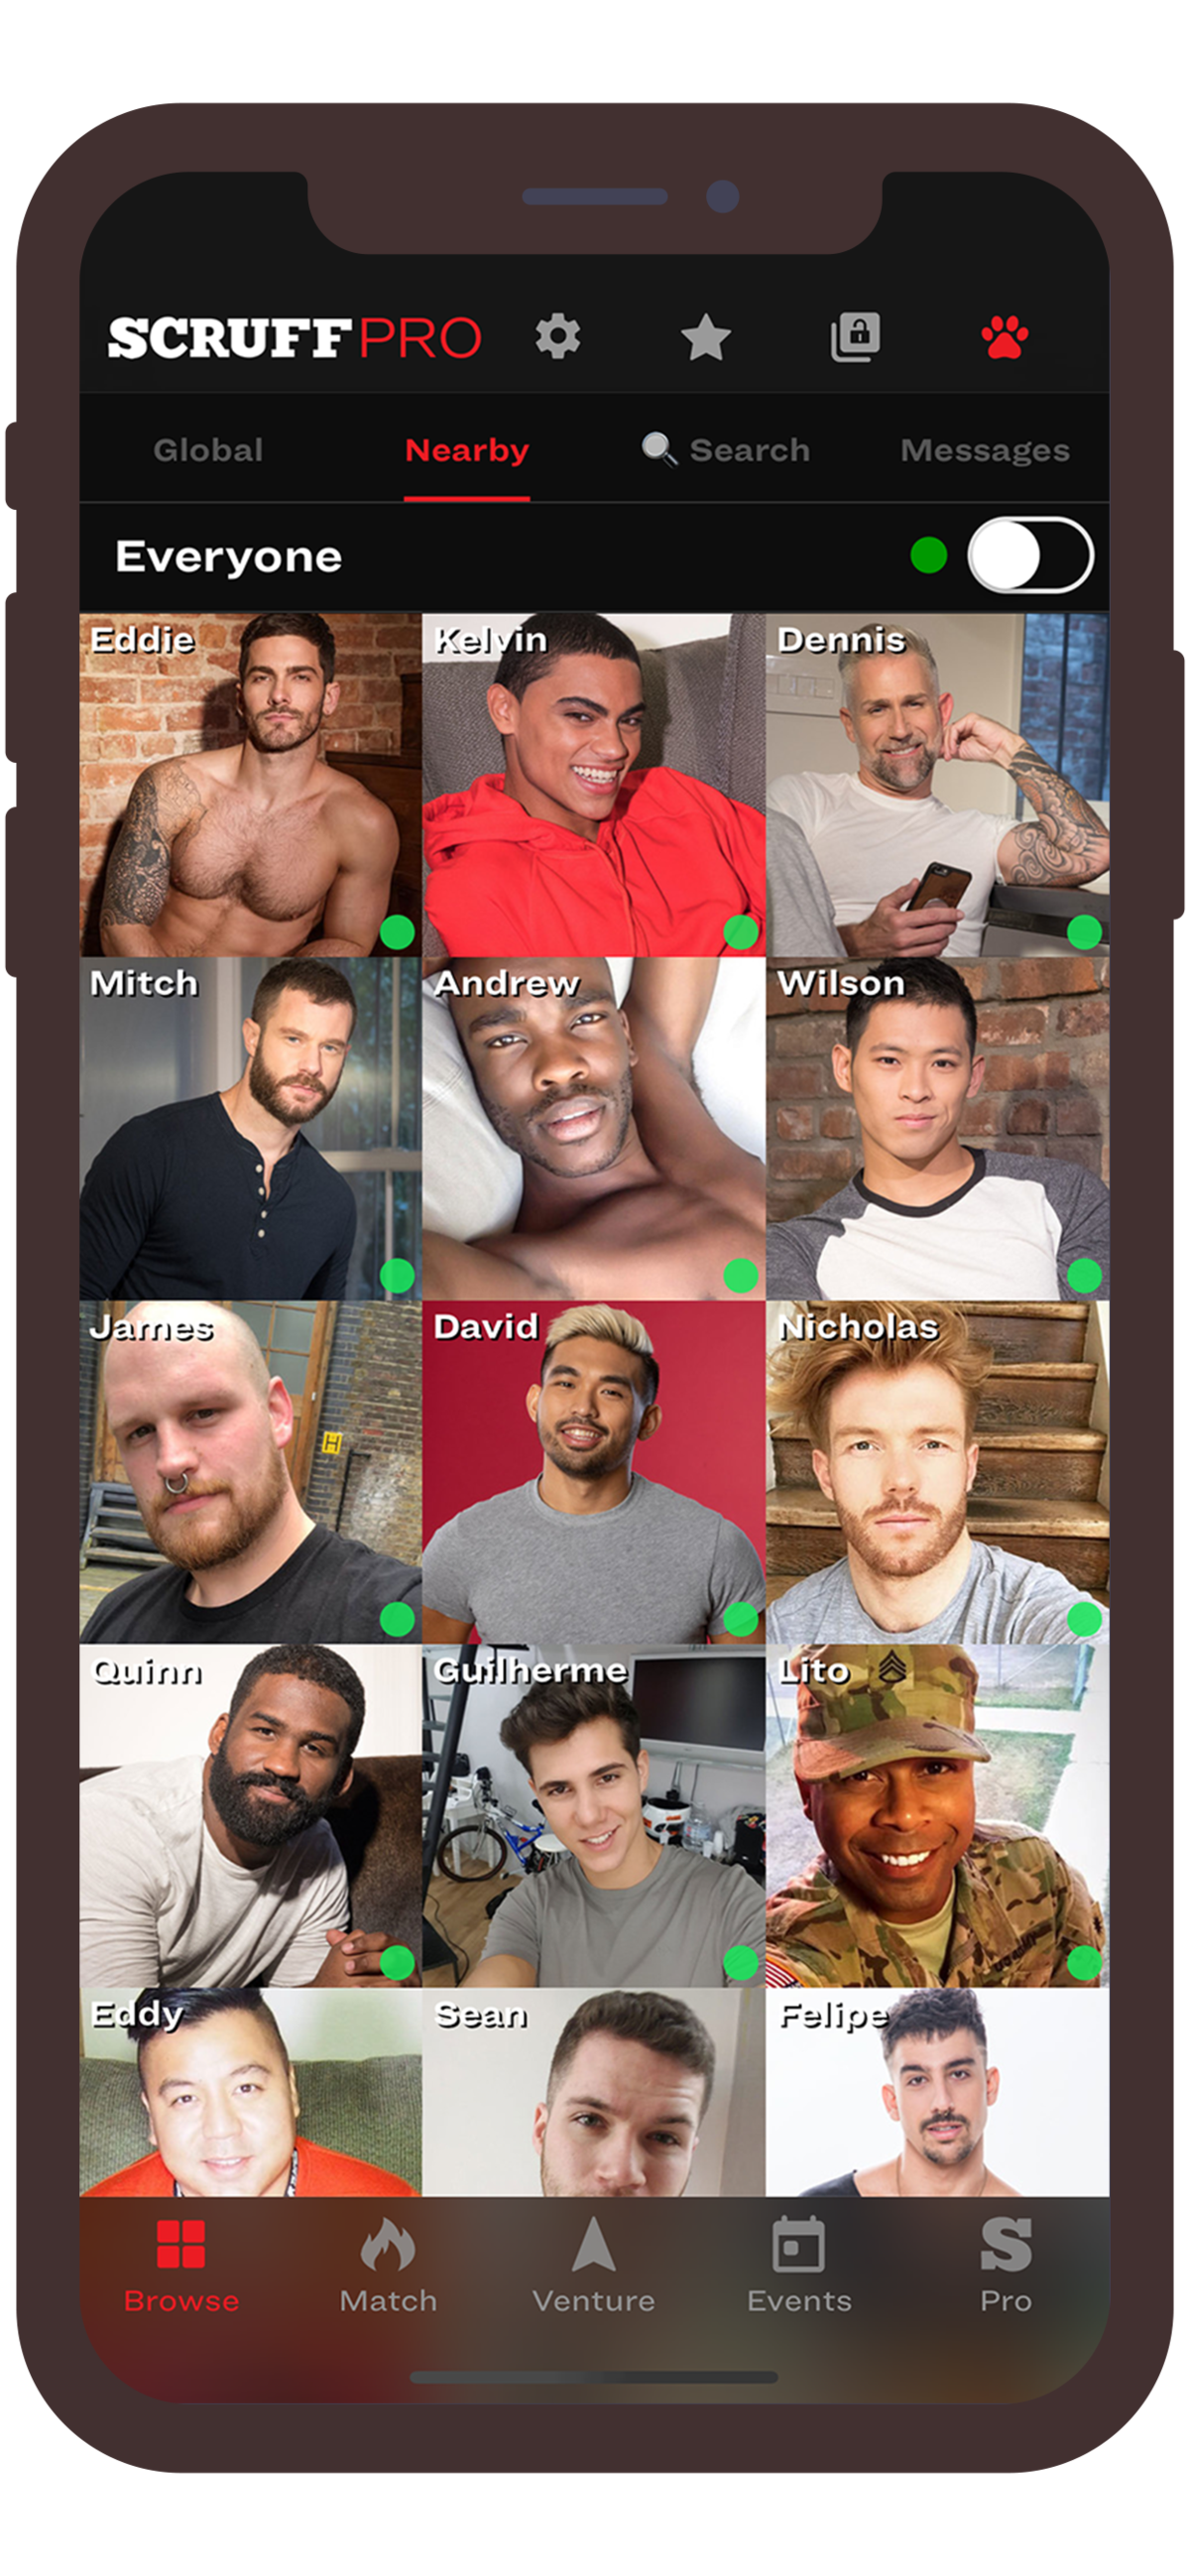 SCRUFF is an international social application for gay, bisexual, and transgender men that runs In, S